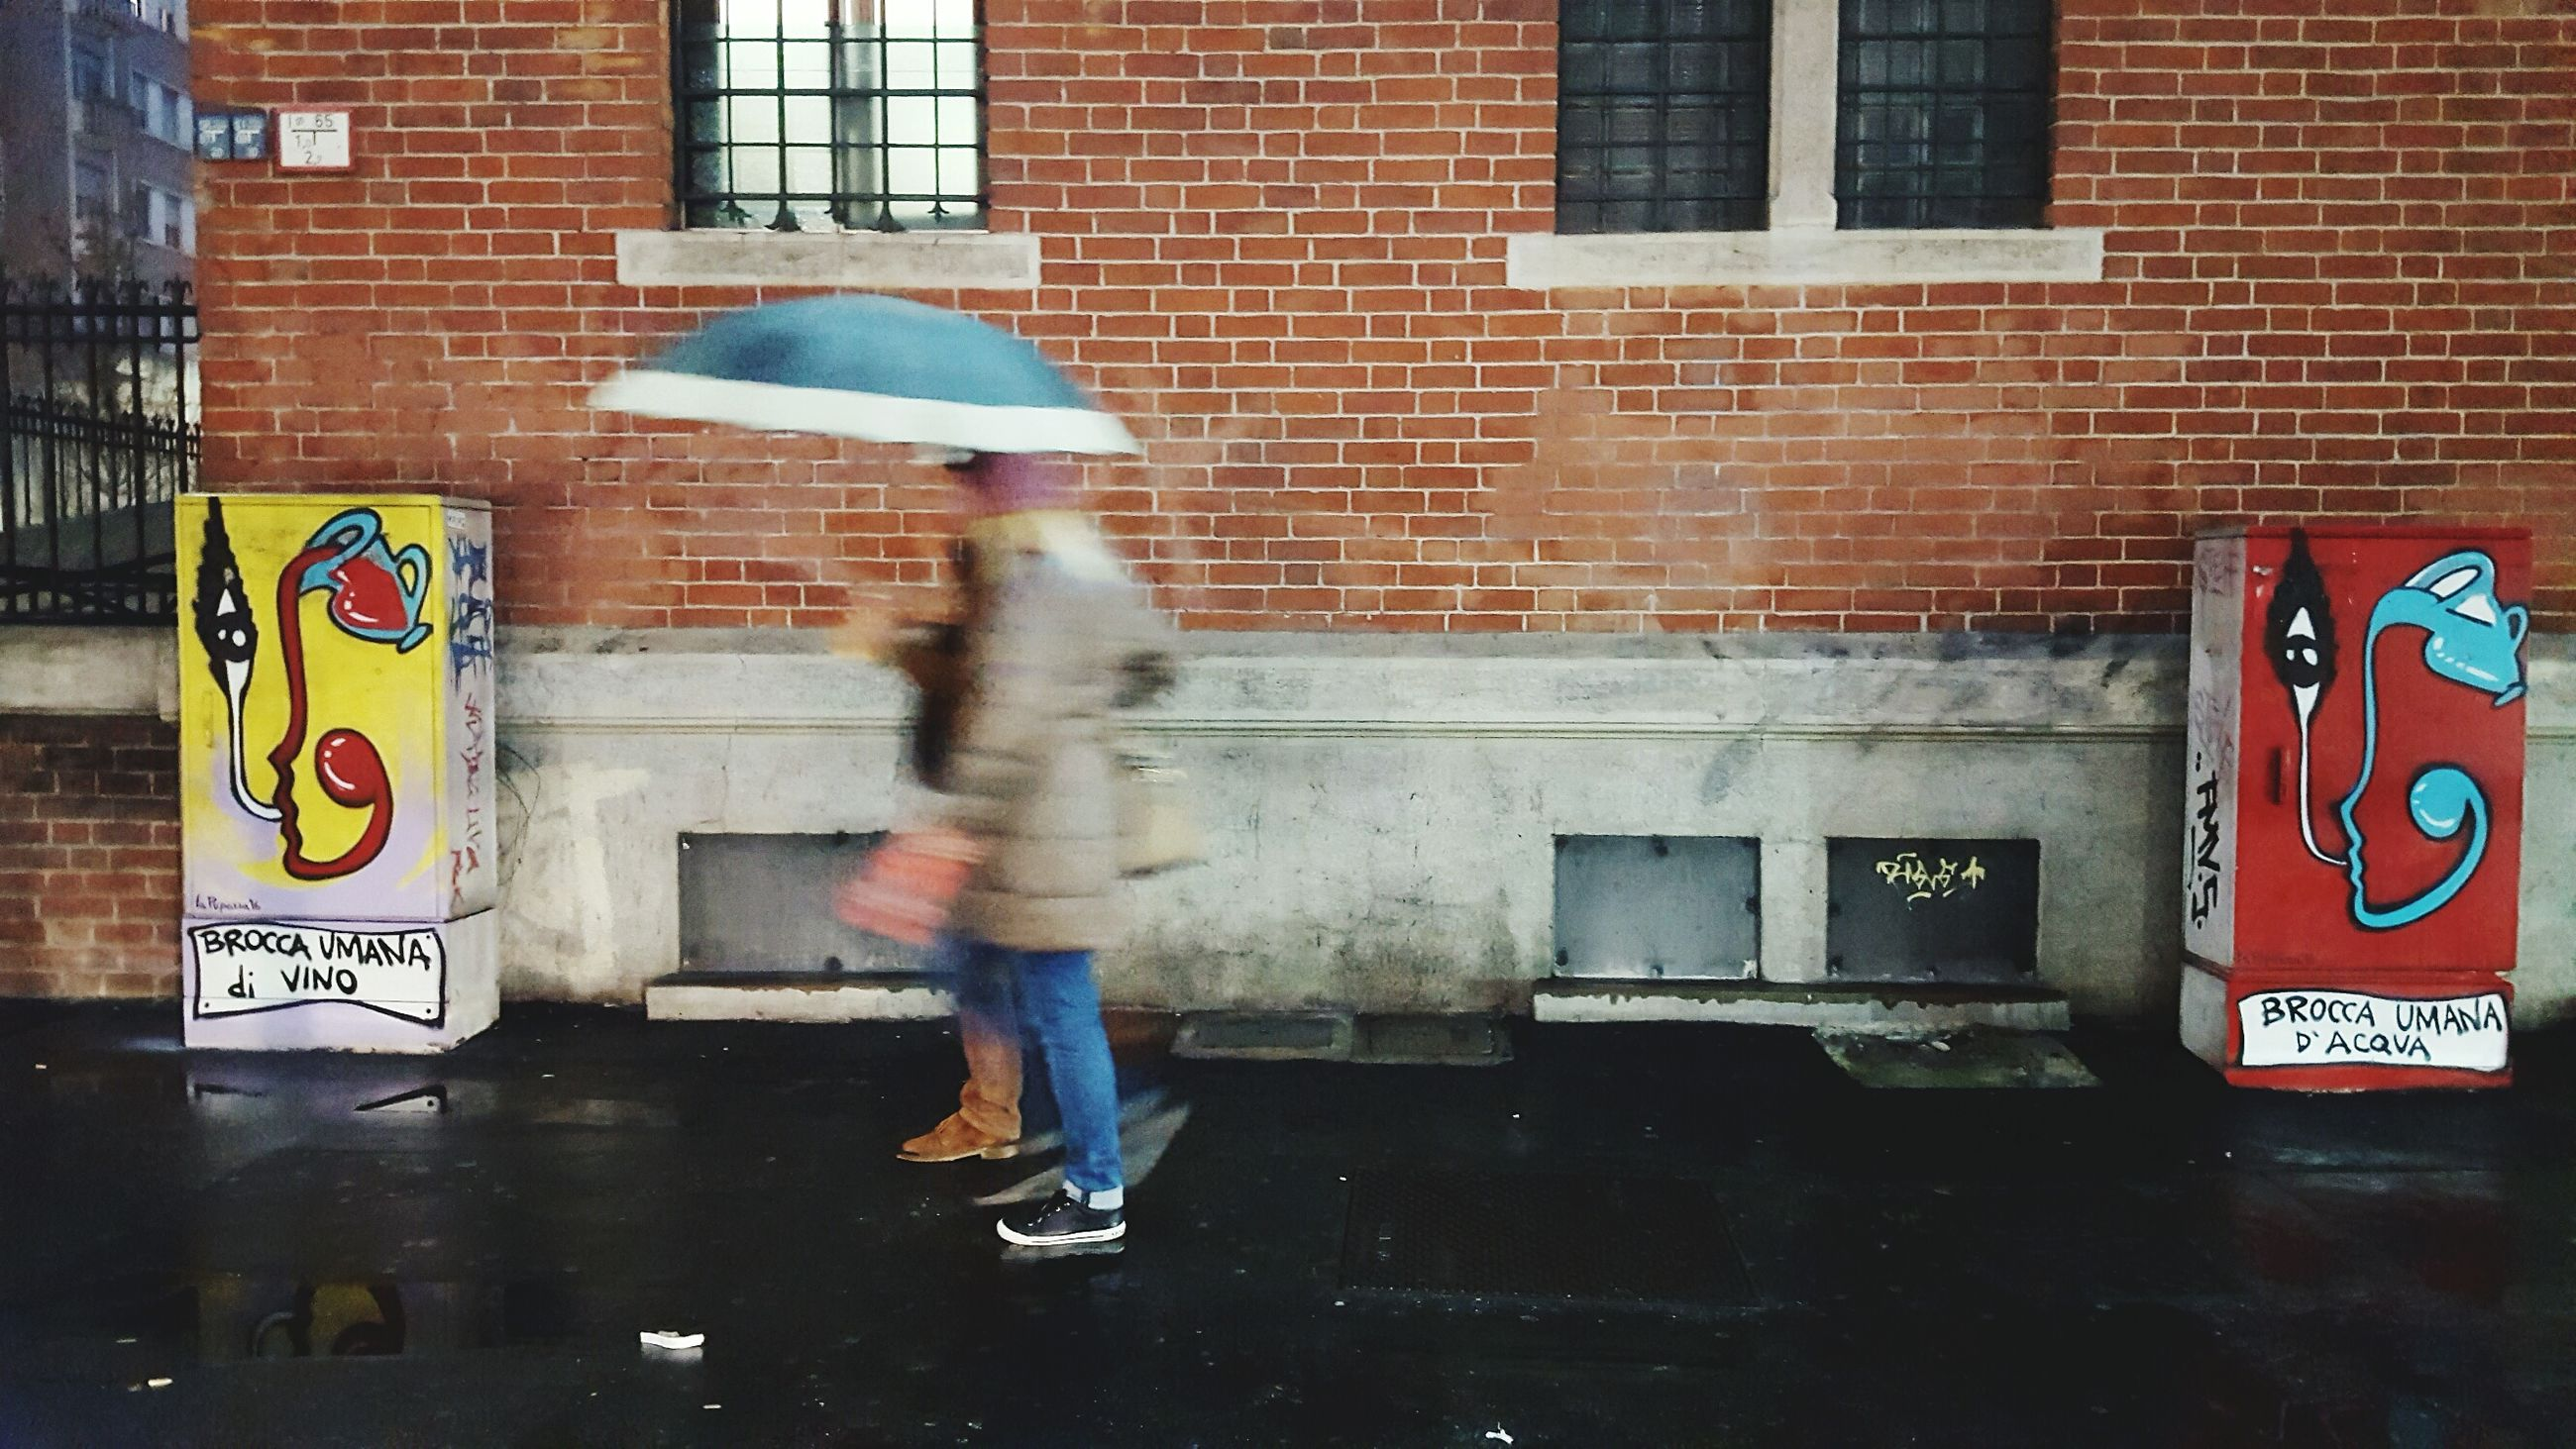 rain, wet, blurred motion, city, motion, child, walking, full length, one person, real people, people, urgency, day, outdoors, road sign, architecture, adult